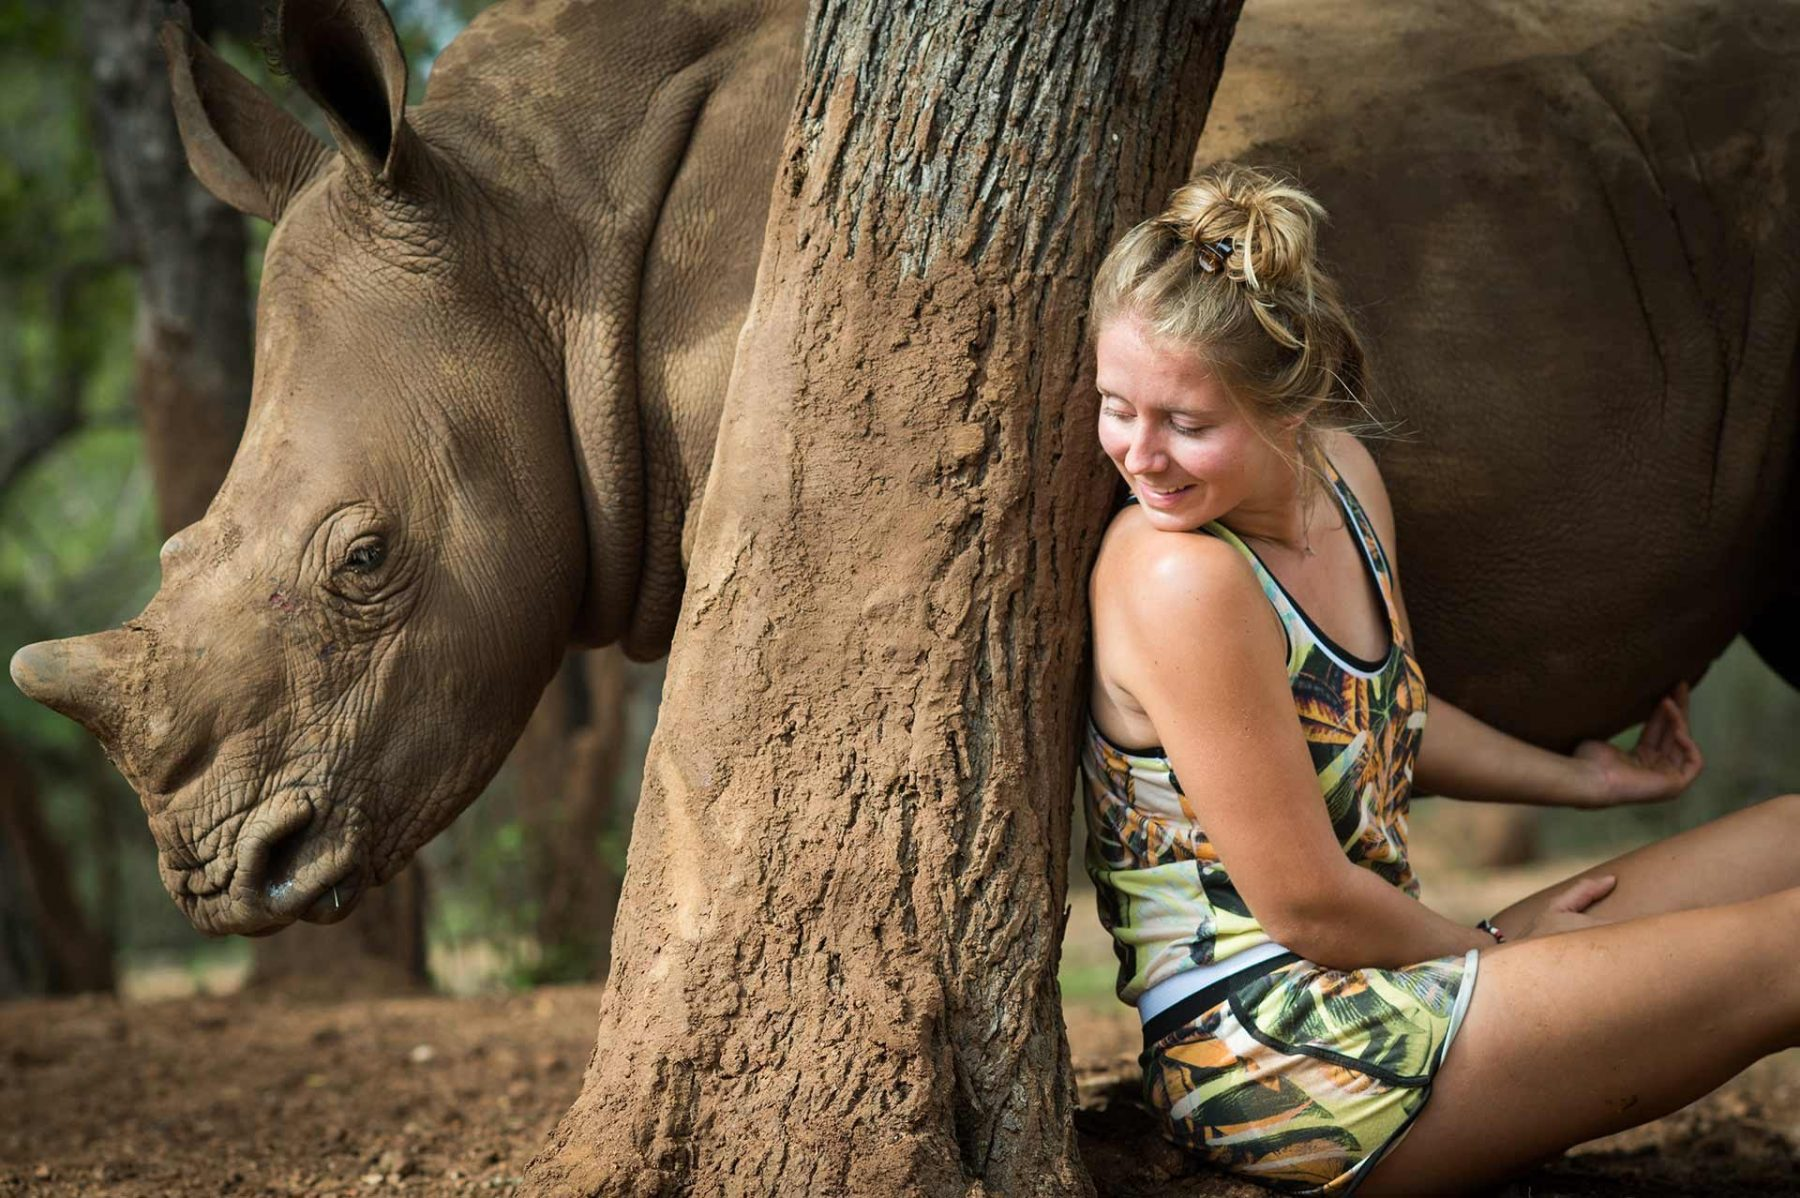 Jade Aldridge at Rhino Revolution with a young rescued rhinoceros, whose mother was killed by poachers. South Africa, 2016